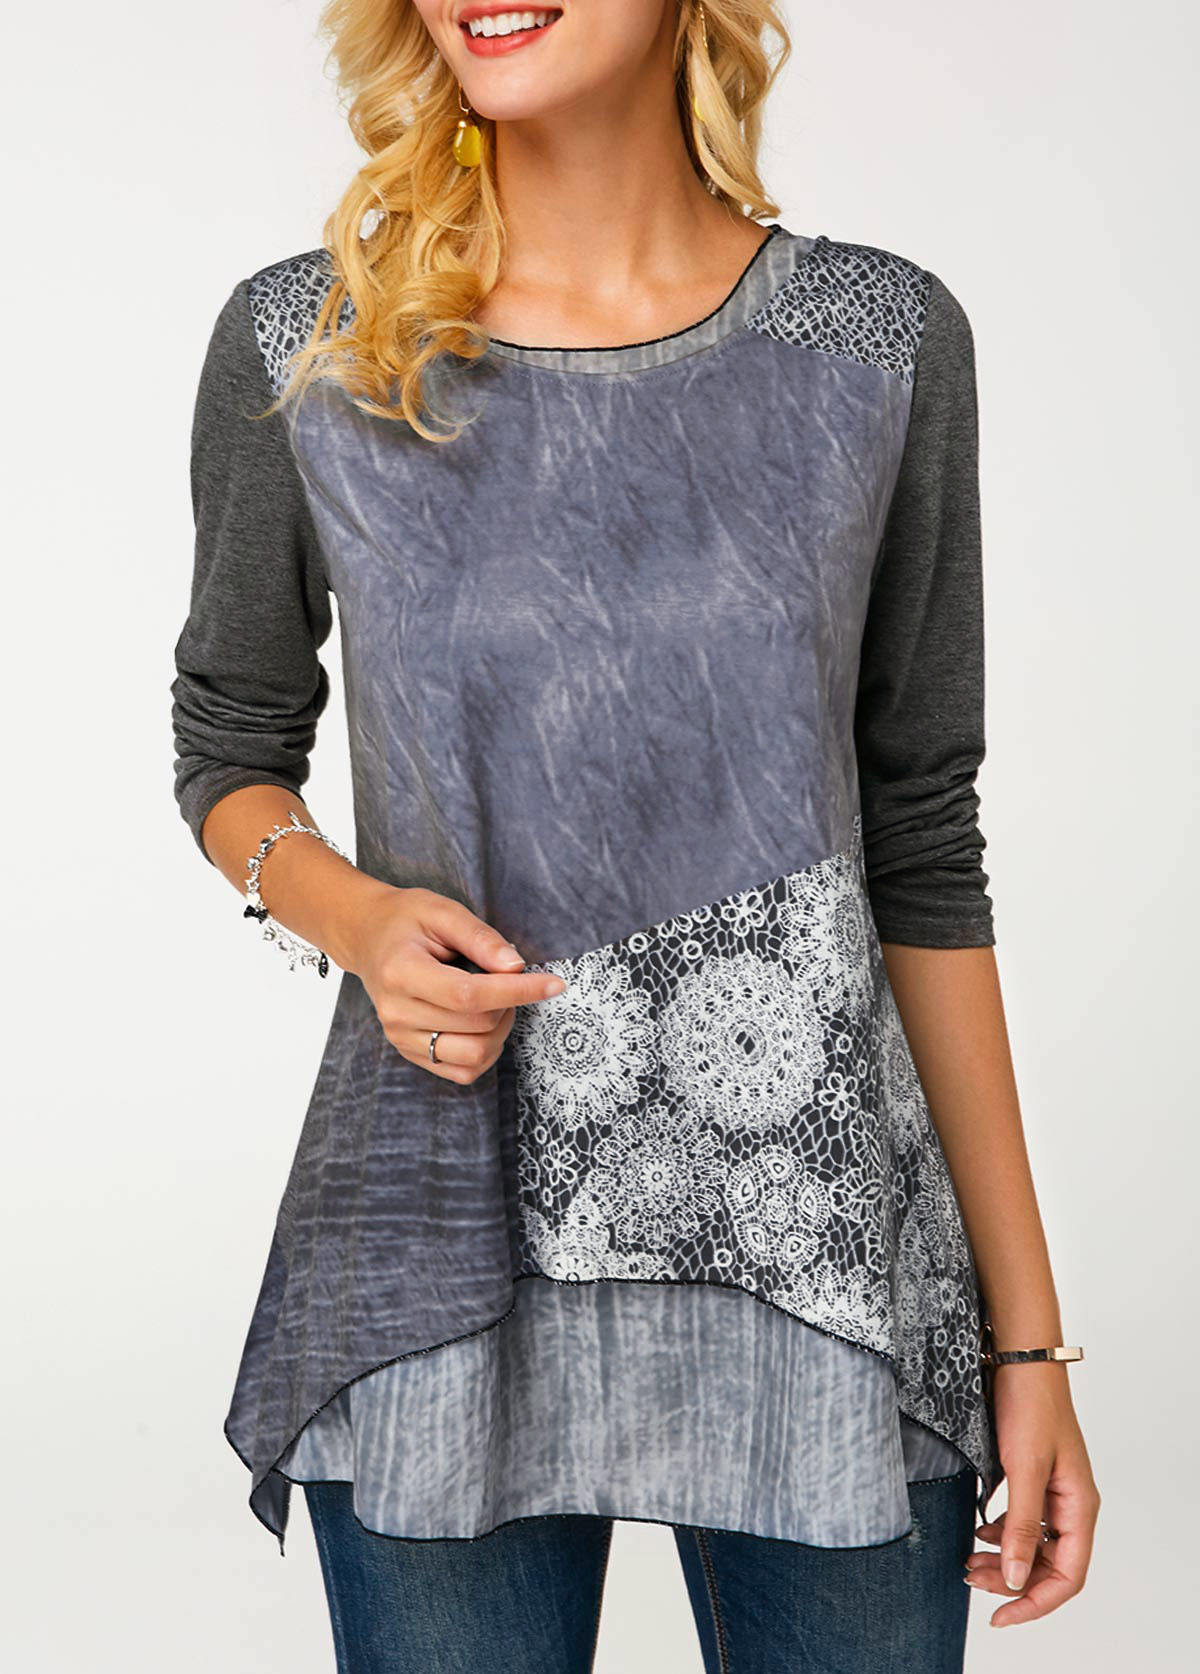 ROTITA Long Sleeve Crew Neck Printed Layered Tunic T Shirt